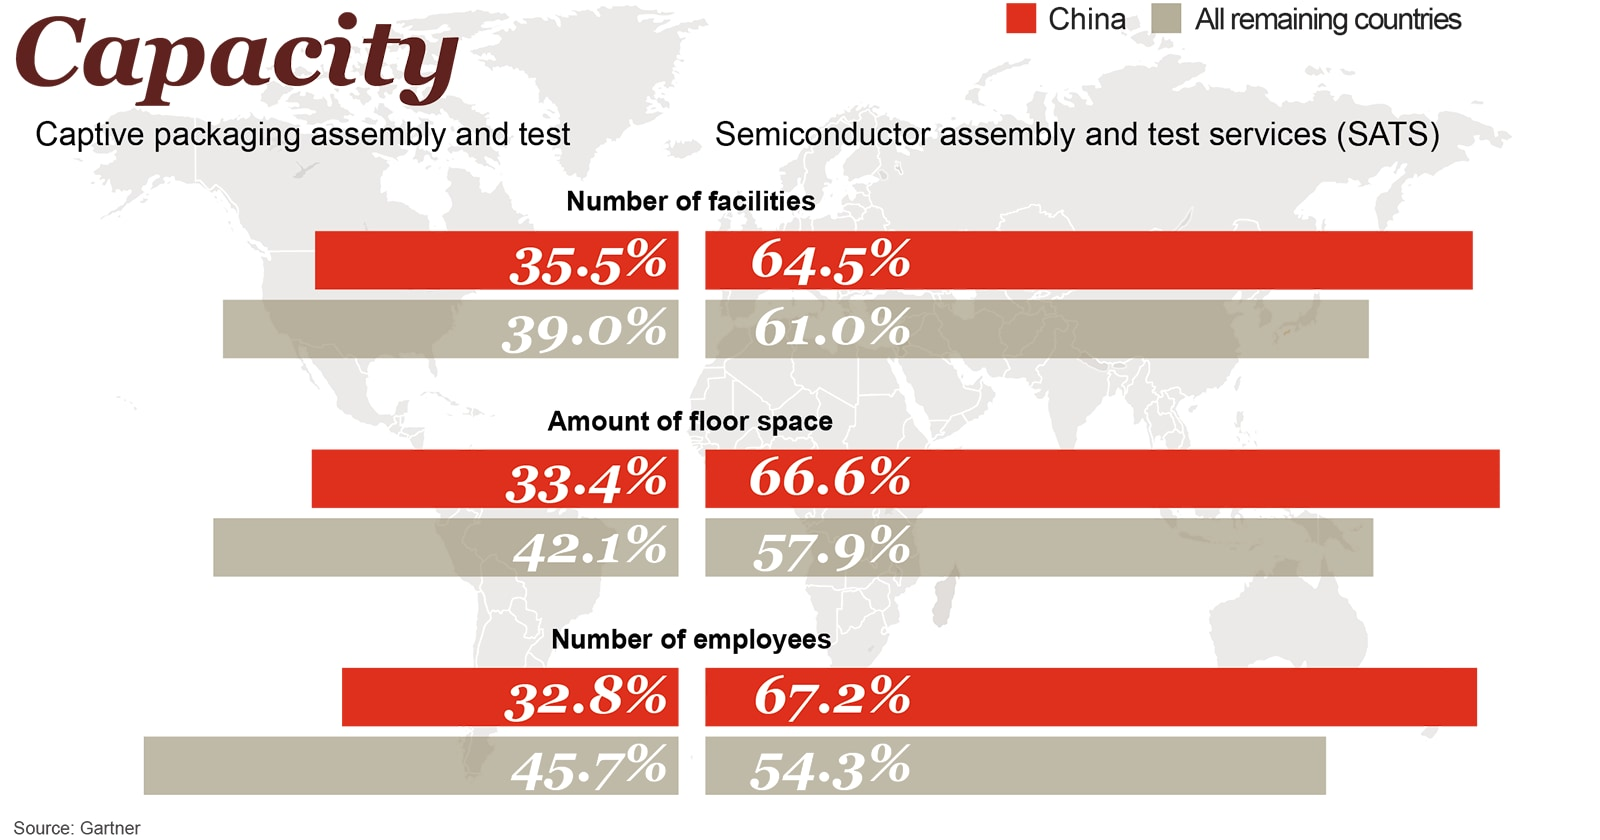 Manufacturing: China's impact on the semiconductor industry